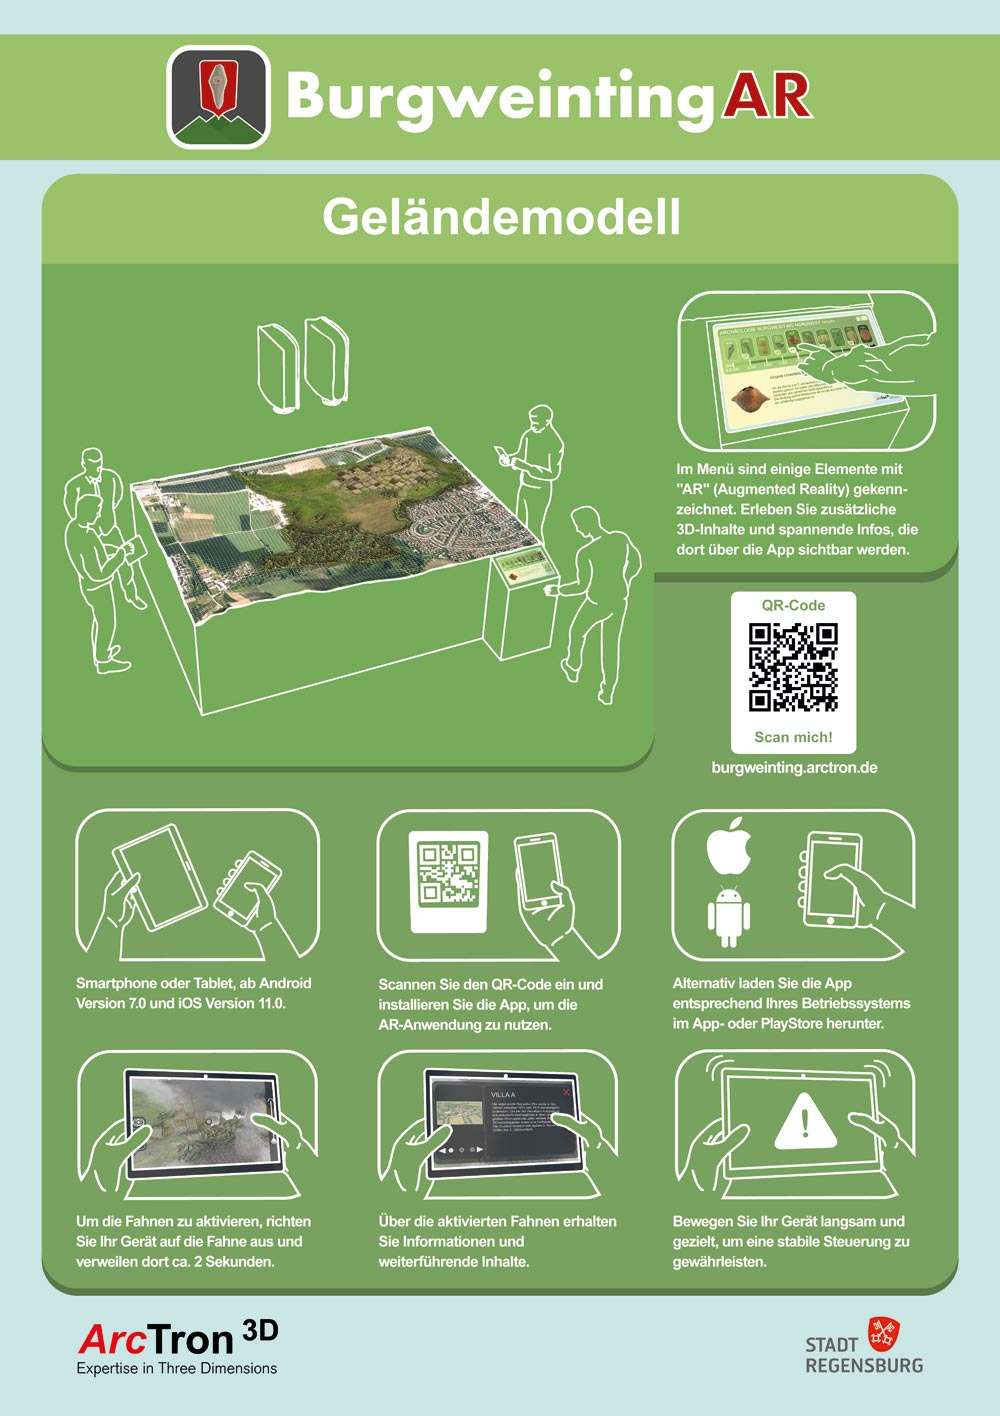 Poster explaining the AR application on your own device for the terrain model.